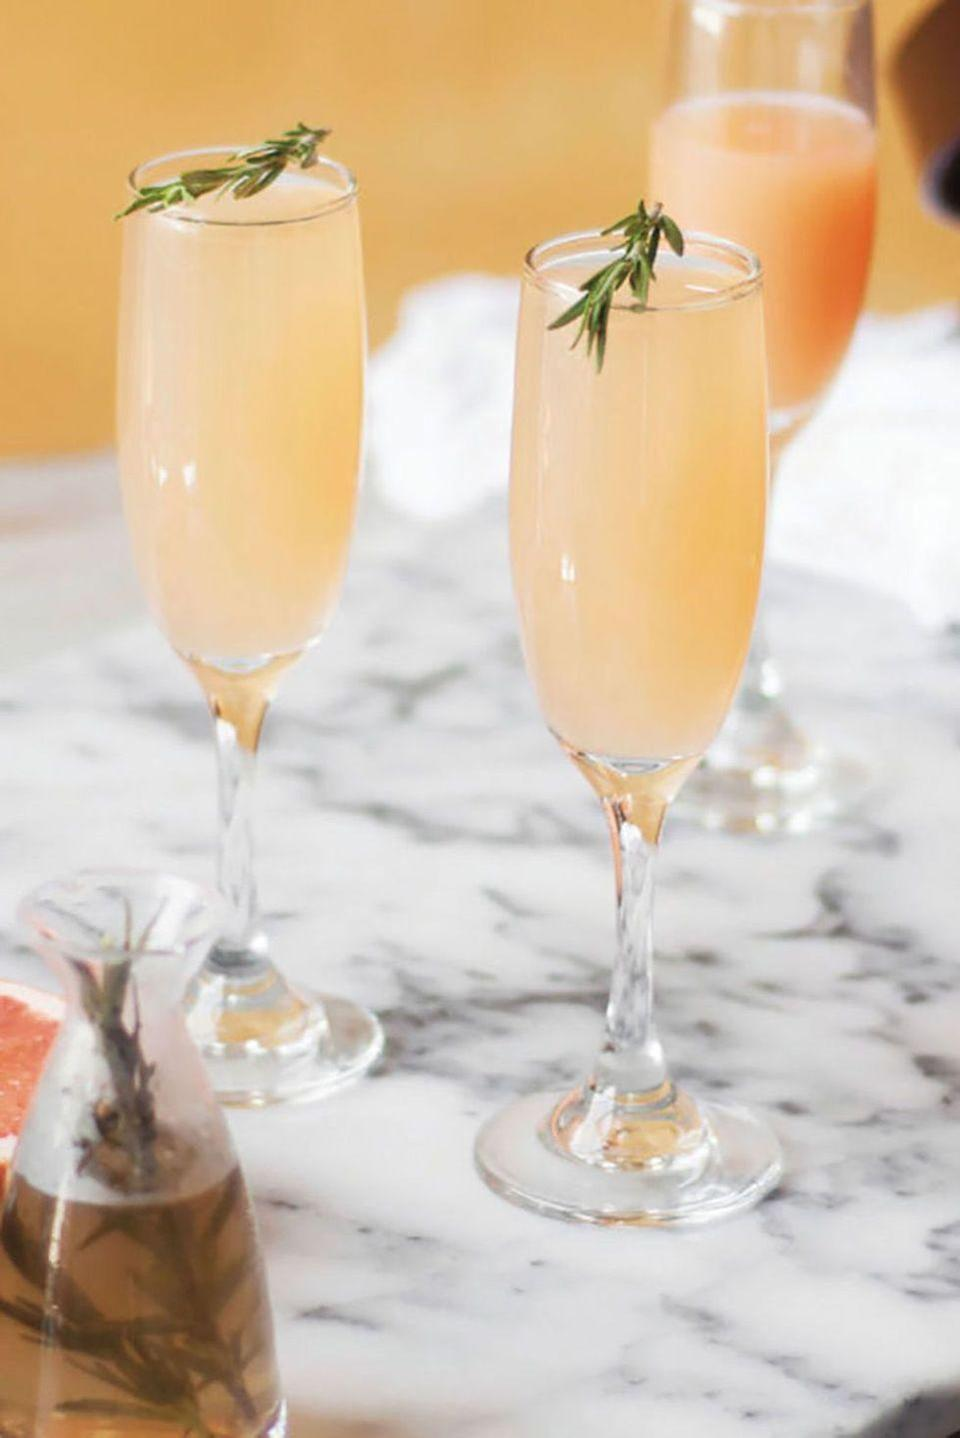 """<p>Cheers! Start her morning off with a celebratory sip of a refreshing mimosa—or should we say <em>mom-</em>osa? Don't forget the garnish!</p><p><strong><a href=""""https://www.countryliving.com/food-drinks/recipes/a42606/grapefruit-and-rosemary-mimosa/"""" rel=""""nofollow noopener"""" target=""""_blank"""" data-ylk=""""slk:Get the recipe"""" class=""""link rapid-noclick-resp"""">Get the recipe</a>.</strong></p><p><a class=""""link rapid-noclick-resp"""" href=""""https://www.amazon.com/Lenox-Tuscany-Classics-Fluted-Champagne/dp/B00006J00X?tag=syn-yahoo-20&ascsubtag=%5Bartid%7C10050.g.1681%5Bsrc%7Cyahoo-us"""" rel=""""nofollow noopener"""" target=""""_blank"""" data-ylk=""""slk:SHOP CHAMPAGNE FLUTES"""">SHOP CHAMPAGNE FLUTES</a> </p>"""